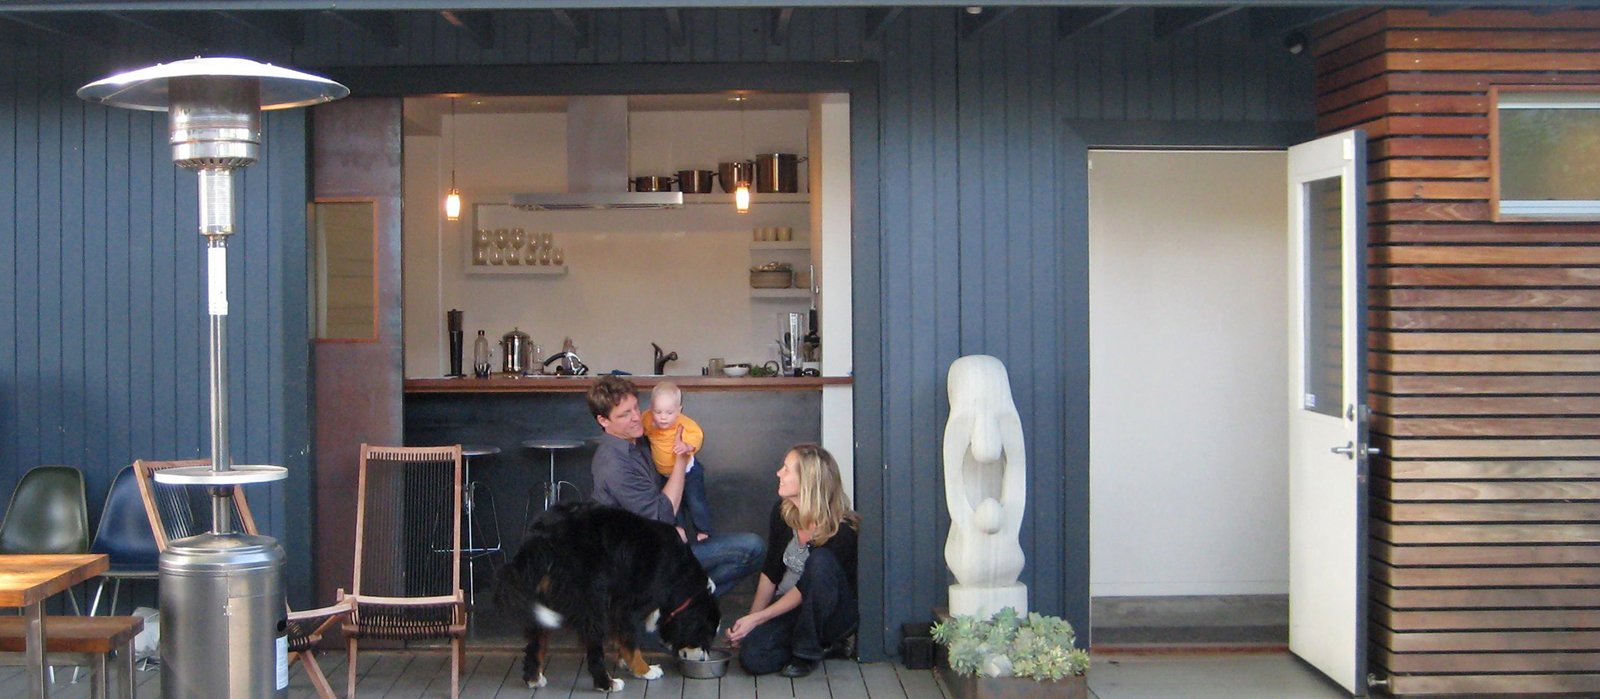 """Shoup, his wife, Taya, and daughter, Hannah, relax on the deck off the kitchen with their dog, Stella. """"For a high percentage of the year, we just roll open the door, and everybody hangs out in the kitchen, where we can keep an eye on Hannah,"""" explains Shoup. """"There's kind of a leathery quality to it,"""" he says of the door, which he fabricated of steel, with glass salvaged from an old sliding door. The sandstone sculpture is called """"Mother and Daughter."""" Photo by Aya Brackett.  Photo 4 of 11 in Creative Re-Use in Oakland"""